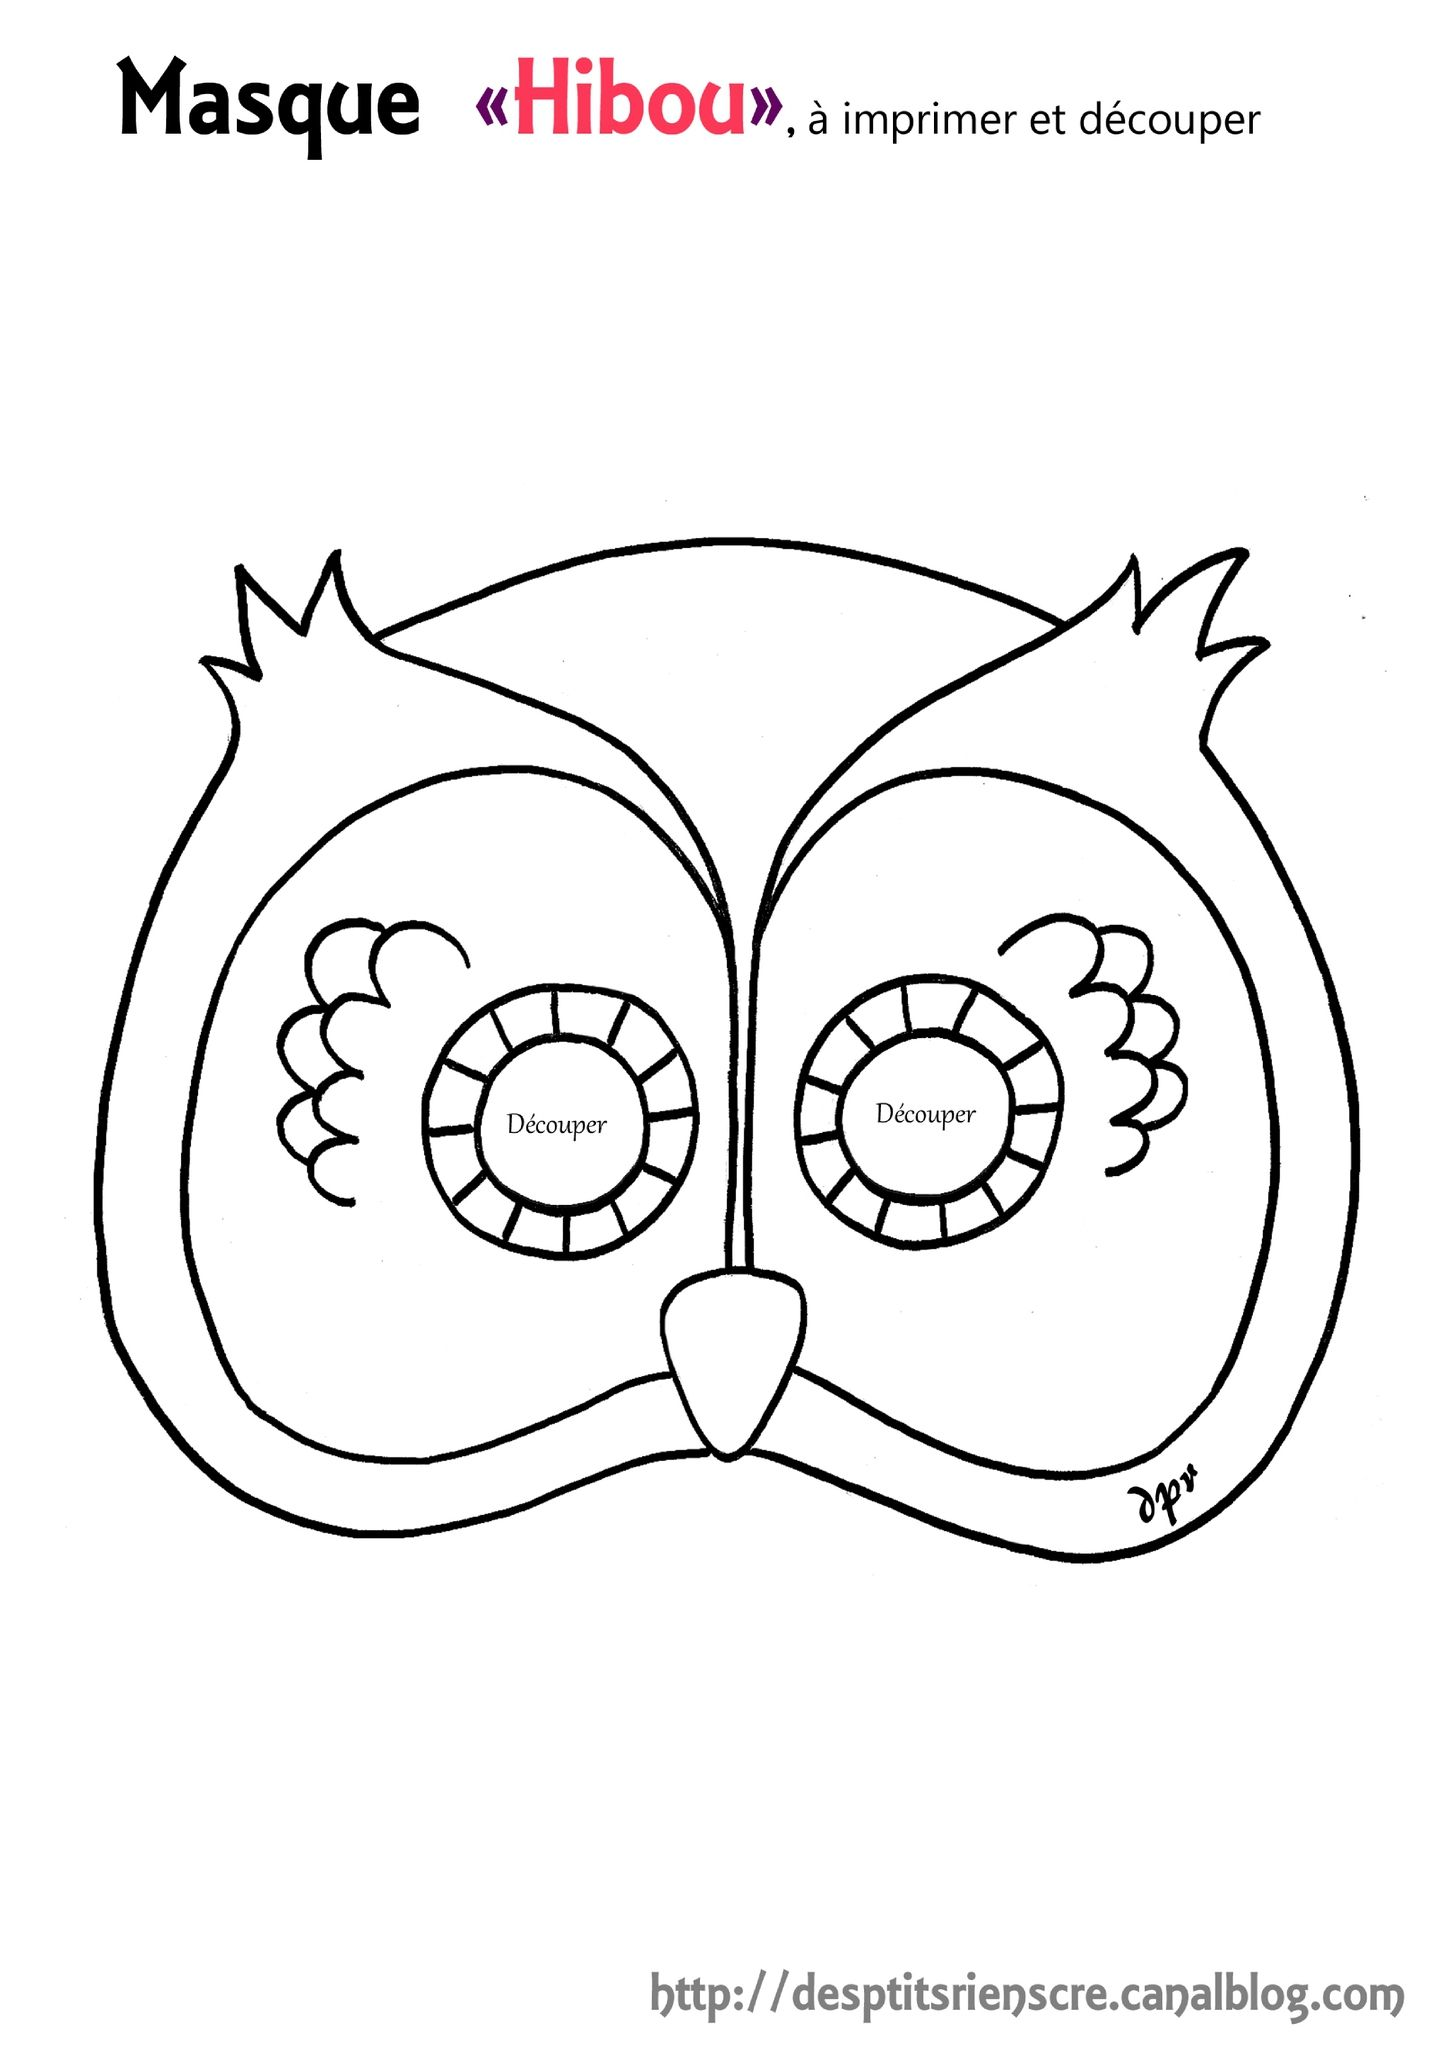 masque hibou copie colorier - Masque Colorier